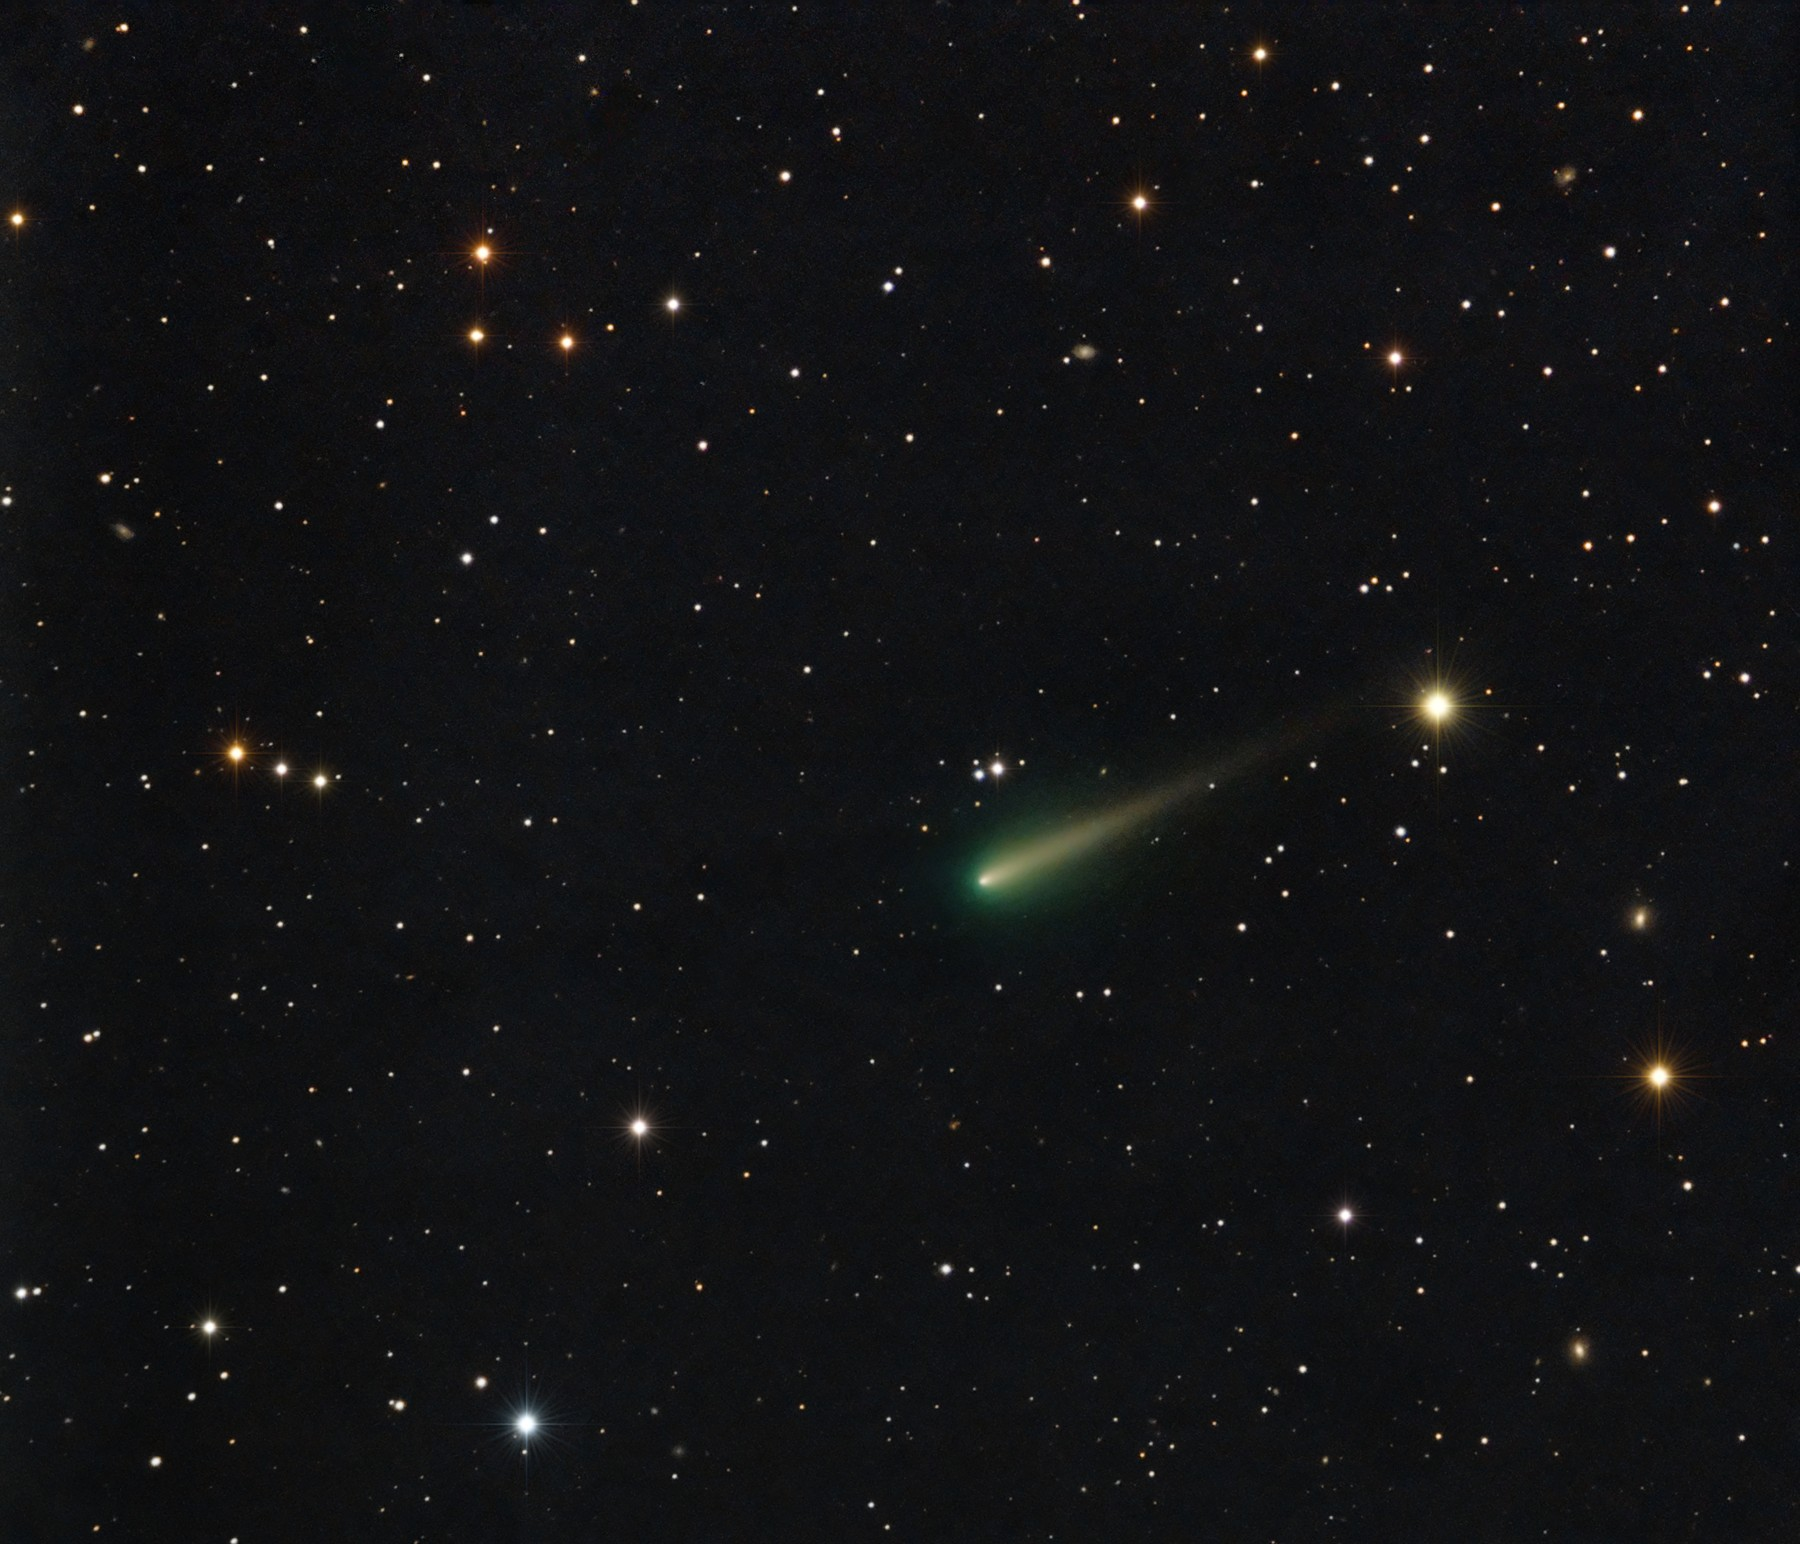 Comet ISON on Oct. 11